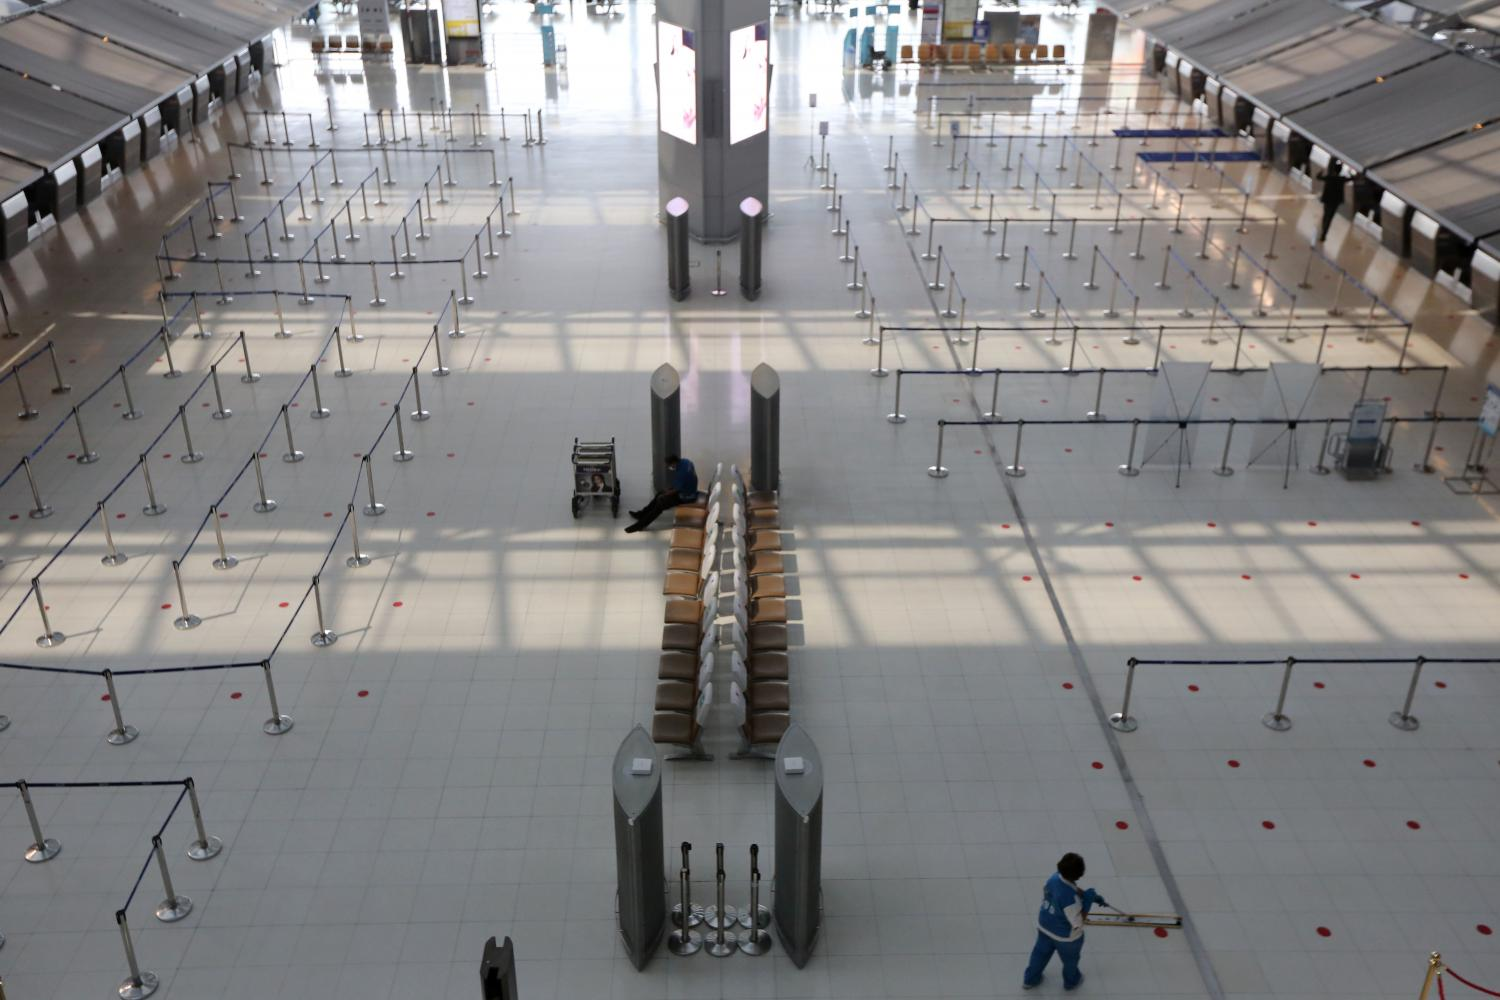 A nearly empty passenger terminal at Suvarnabhumi airport. Tour operators want civil aviation officials to lift restrictions on international flights in the fourth quarter. (Photo by Wichan Charoenkiatpakul)